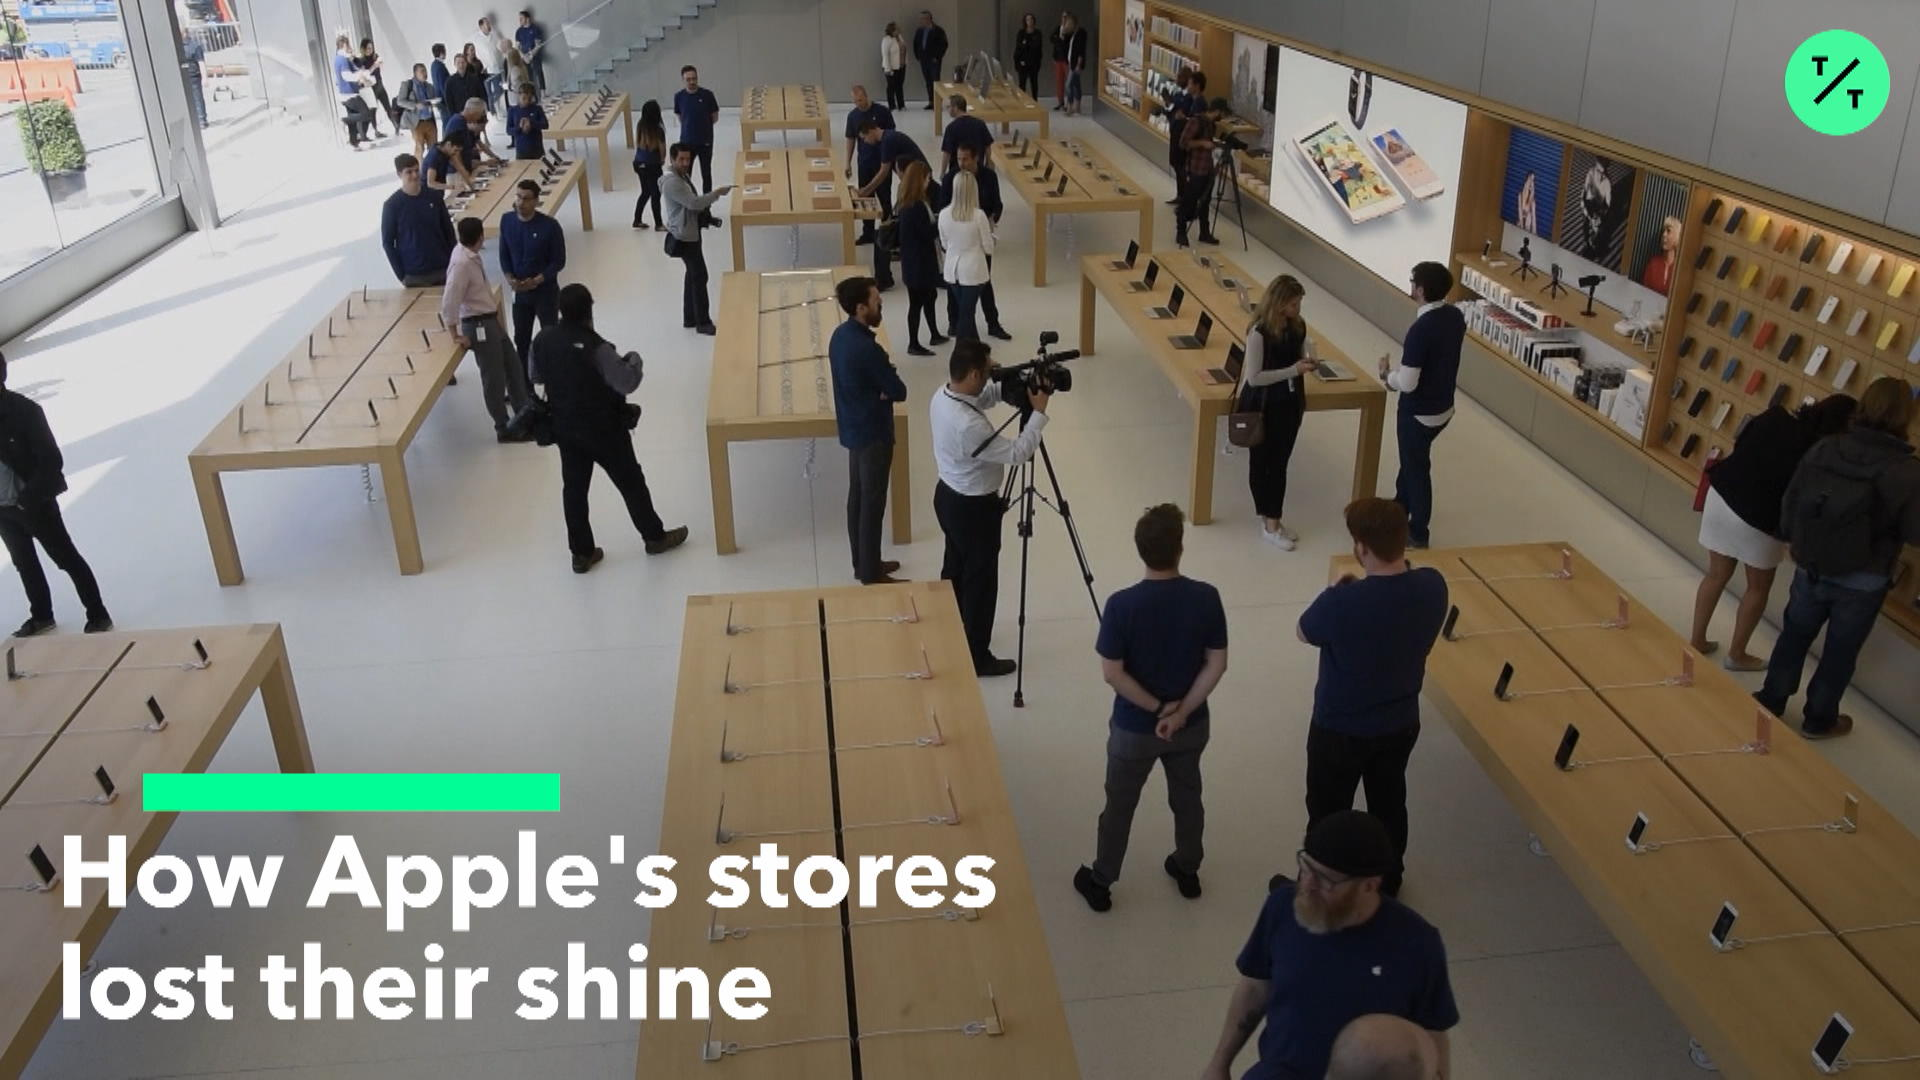 Apple Store Locations: Reviews Show Customer Service in